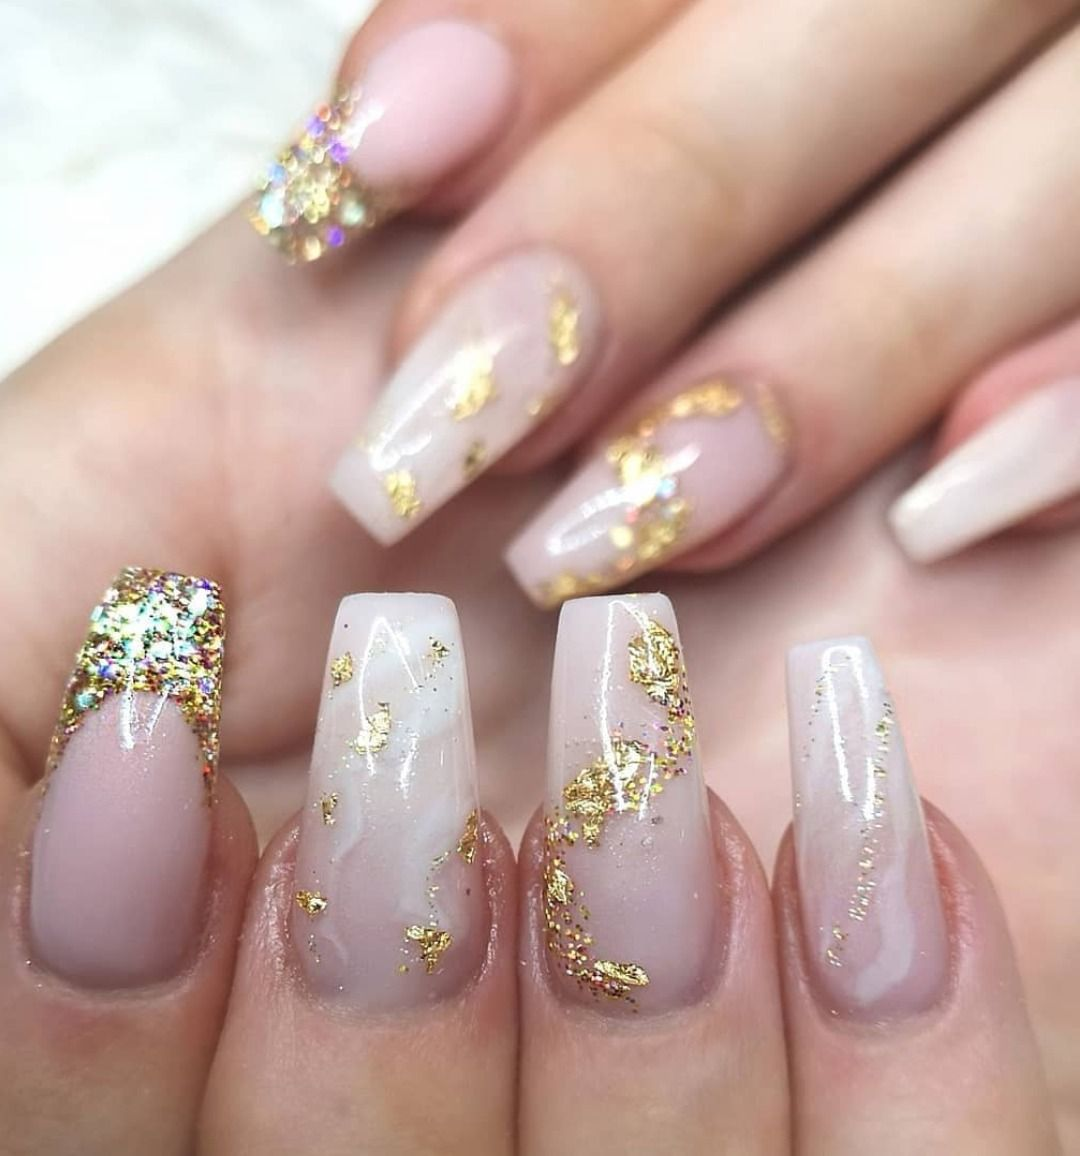 Color O P I Gel Color In Shade Alpine Snow Young Nails Imagination Art Gold Foil On Apres Gel Gold Acrylic Nails White Nails With Gold Pink Acrylic Nails